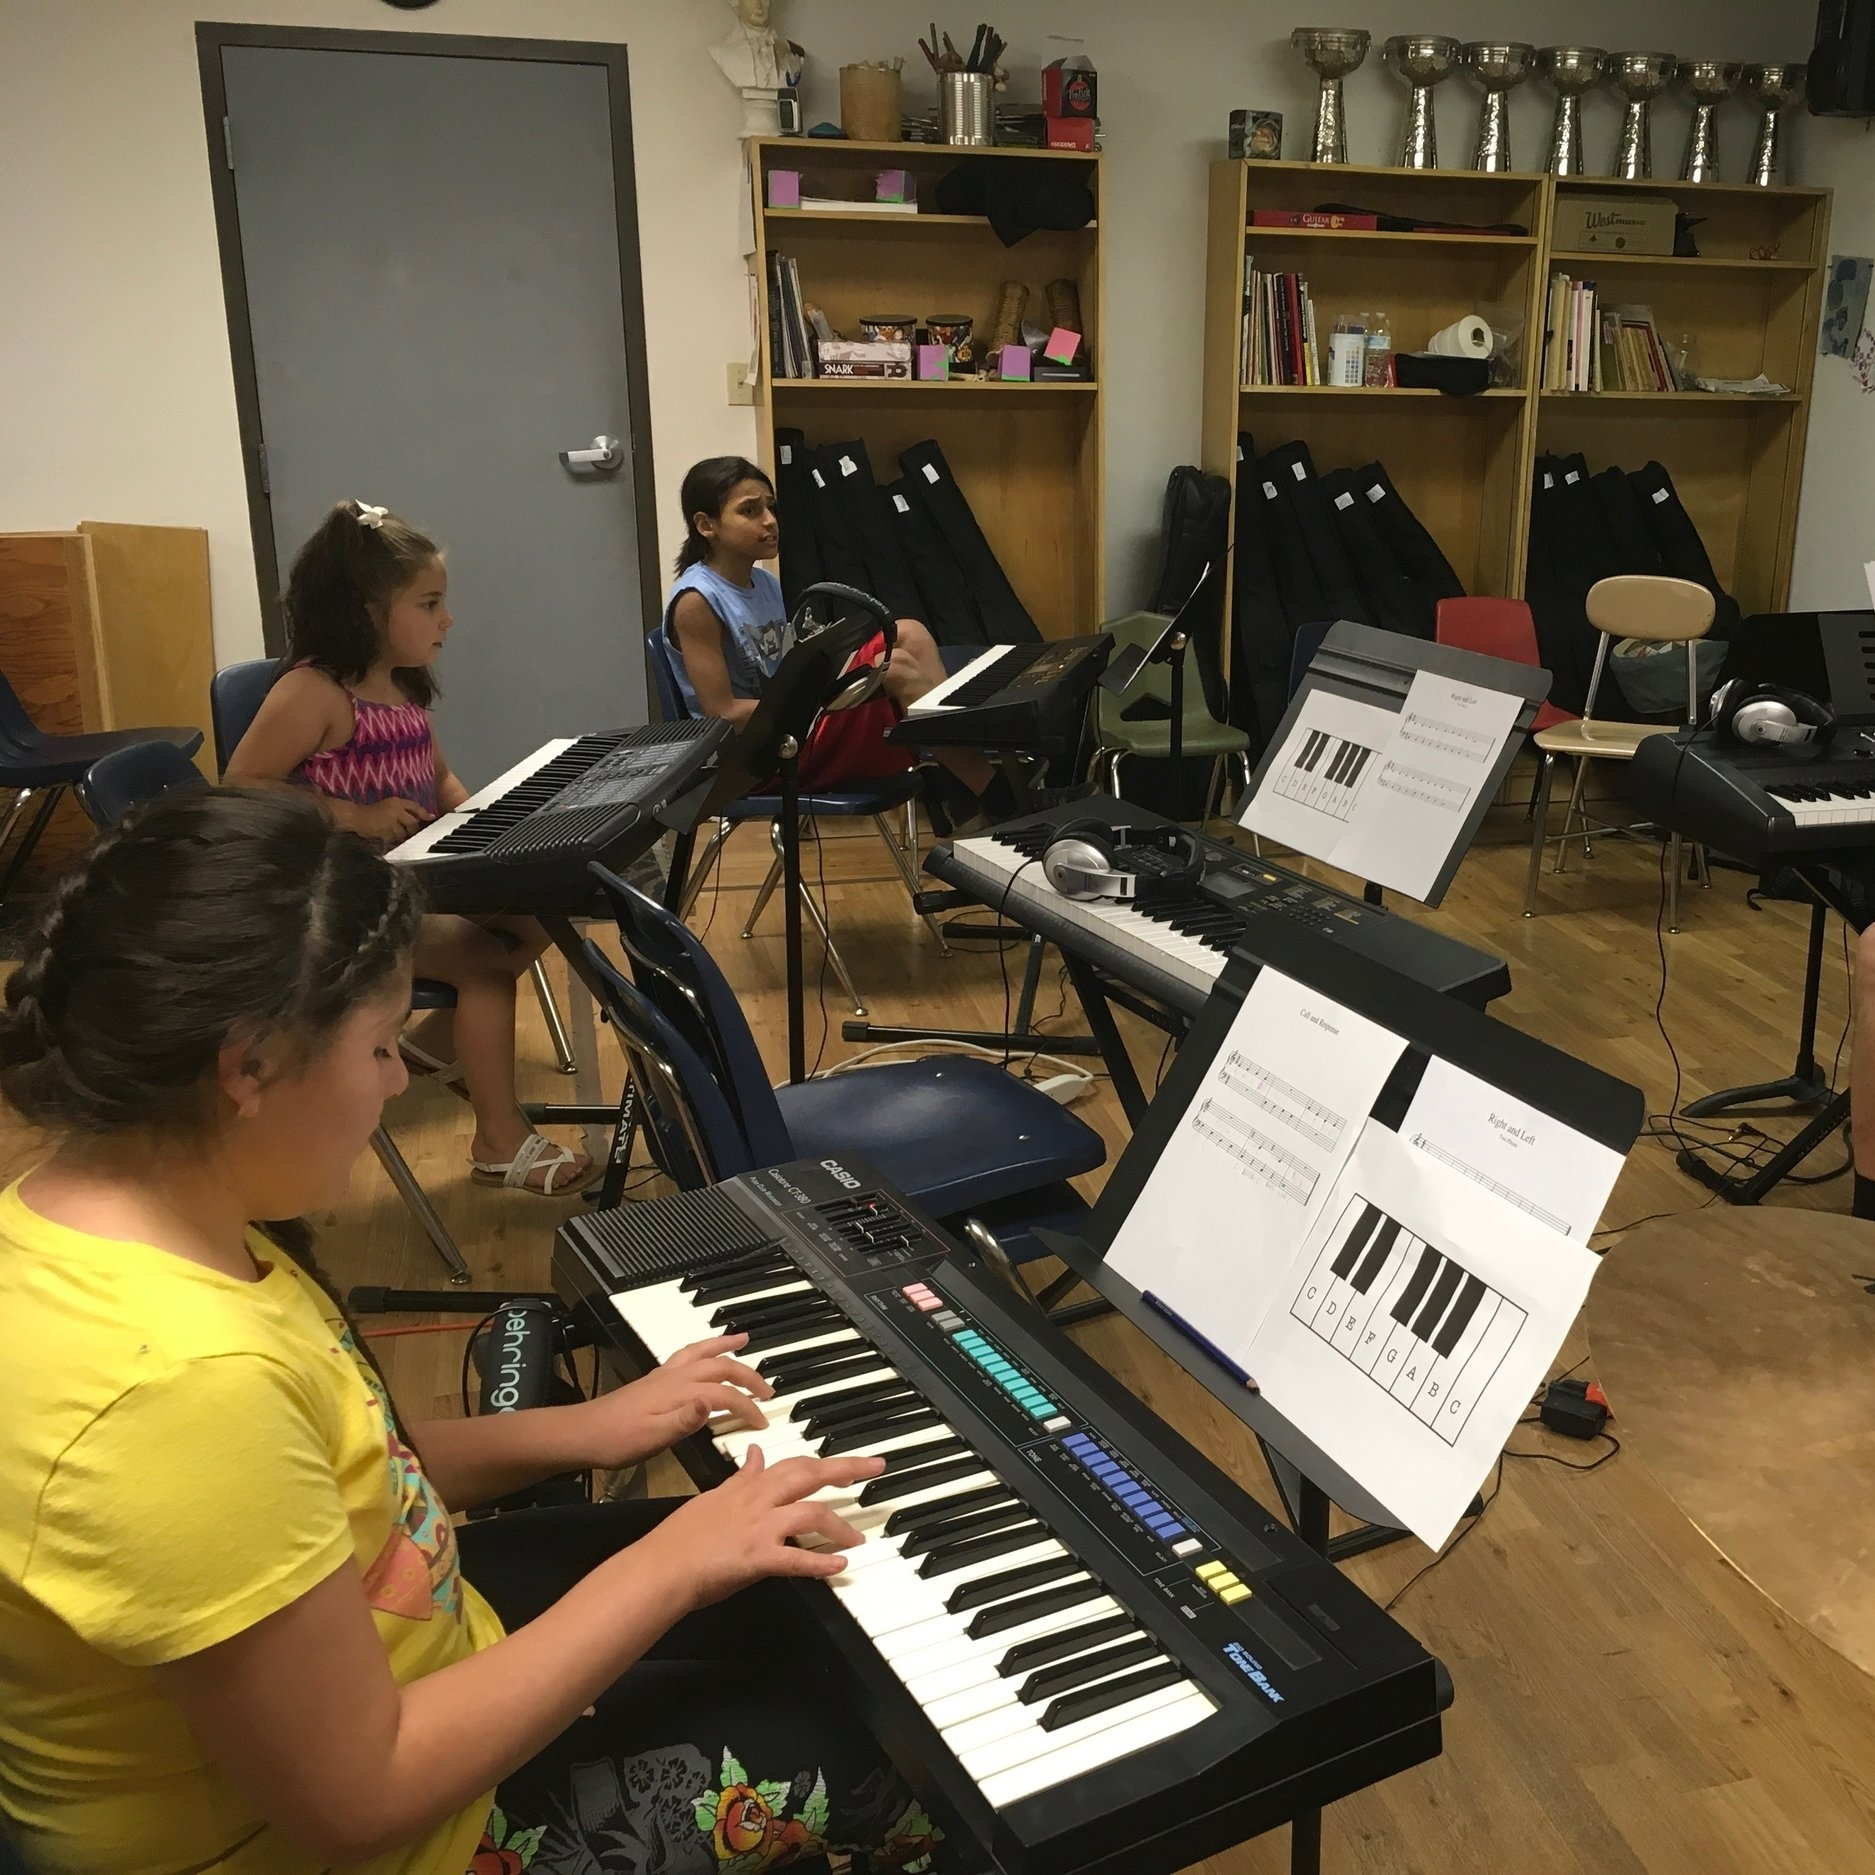 Piano / Keyboard   Instructor: Jesus Montes  Students learn music theory, technique, and improvisation as they practice and perform music in an ensemble class.